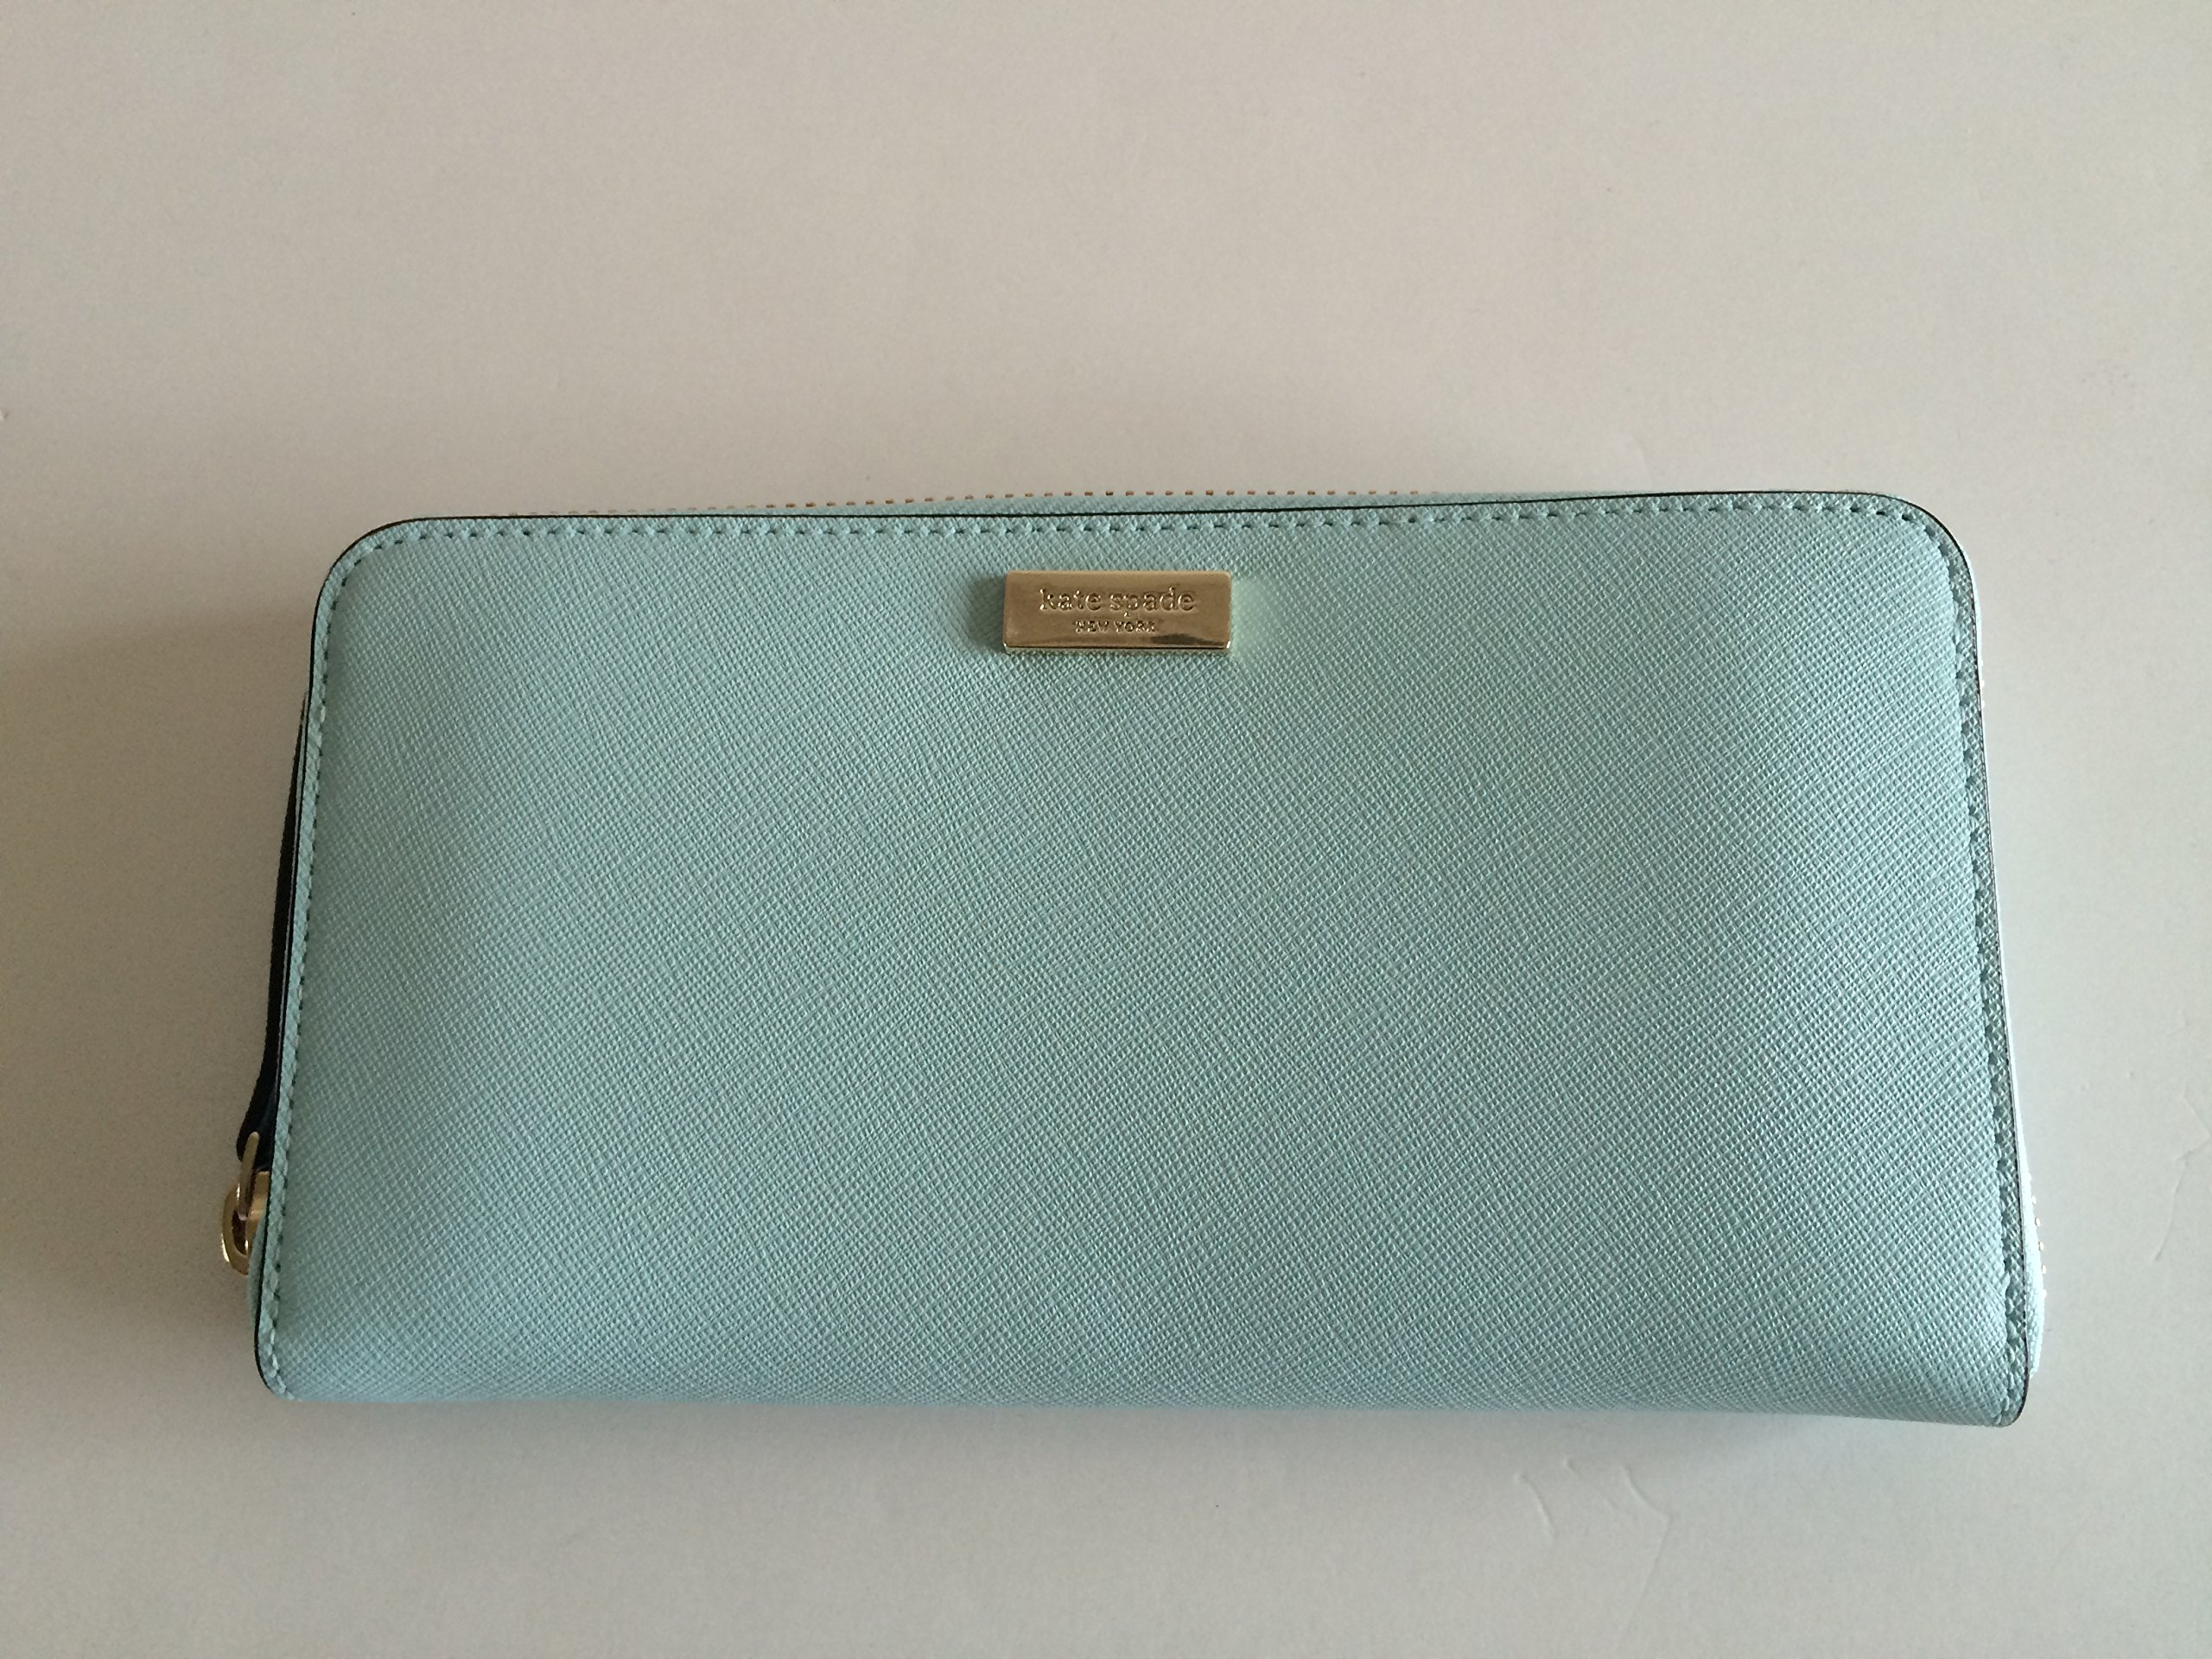 Kate Spade Newbury Lane Neda Leather Wallet (Grace Blue) by Kate Spade New York